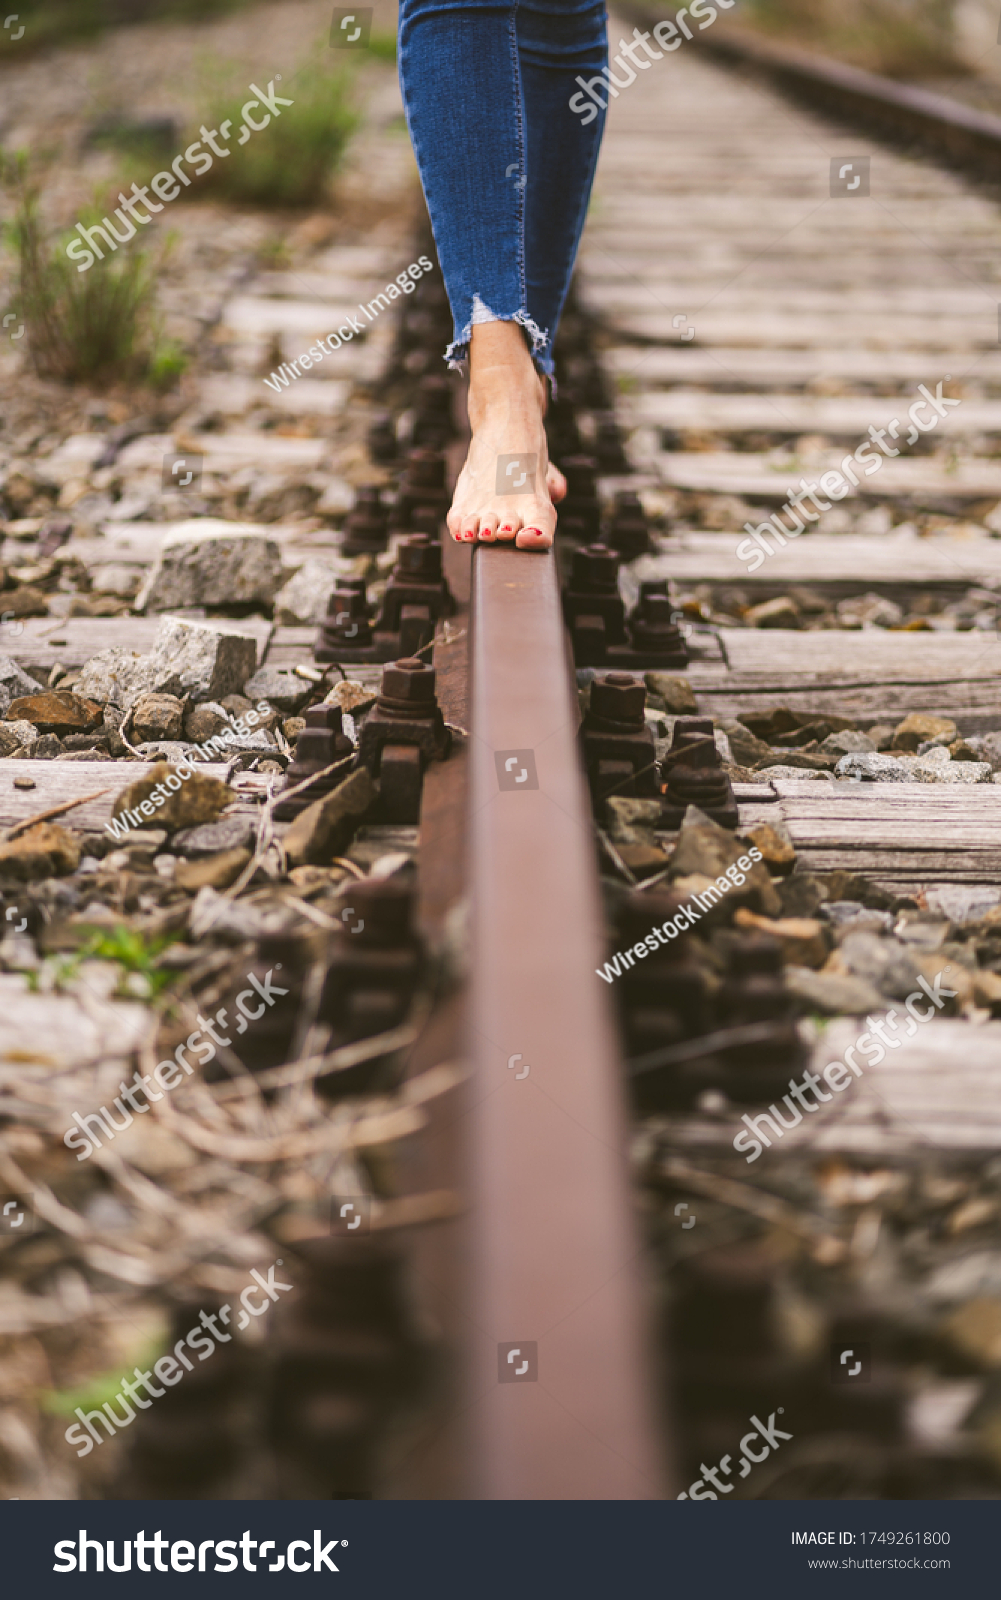 https://image.shutterstock.com/shutterstock/photos/1749261800/display_1500/stock-photo-a-vertical-shot-of-a-female-in-jeans-walking-through-the-train-rails-barefoot-1749261800.jpg